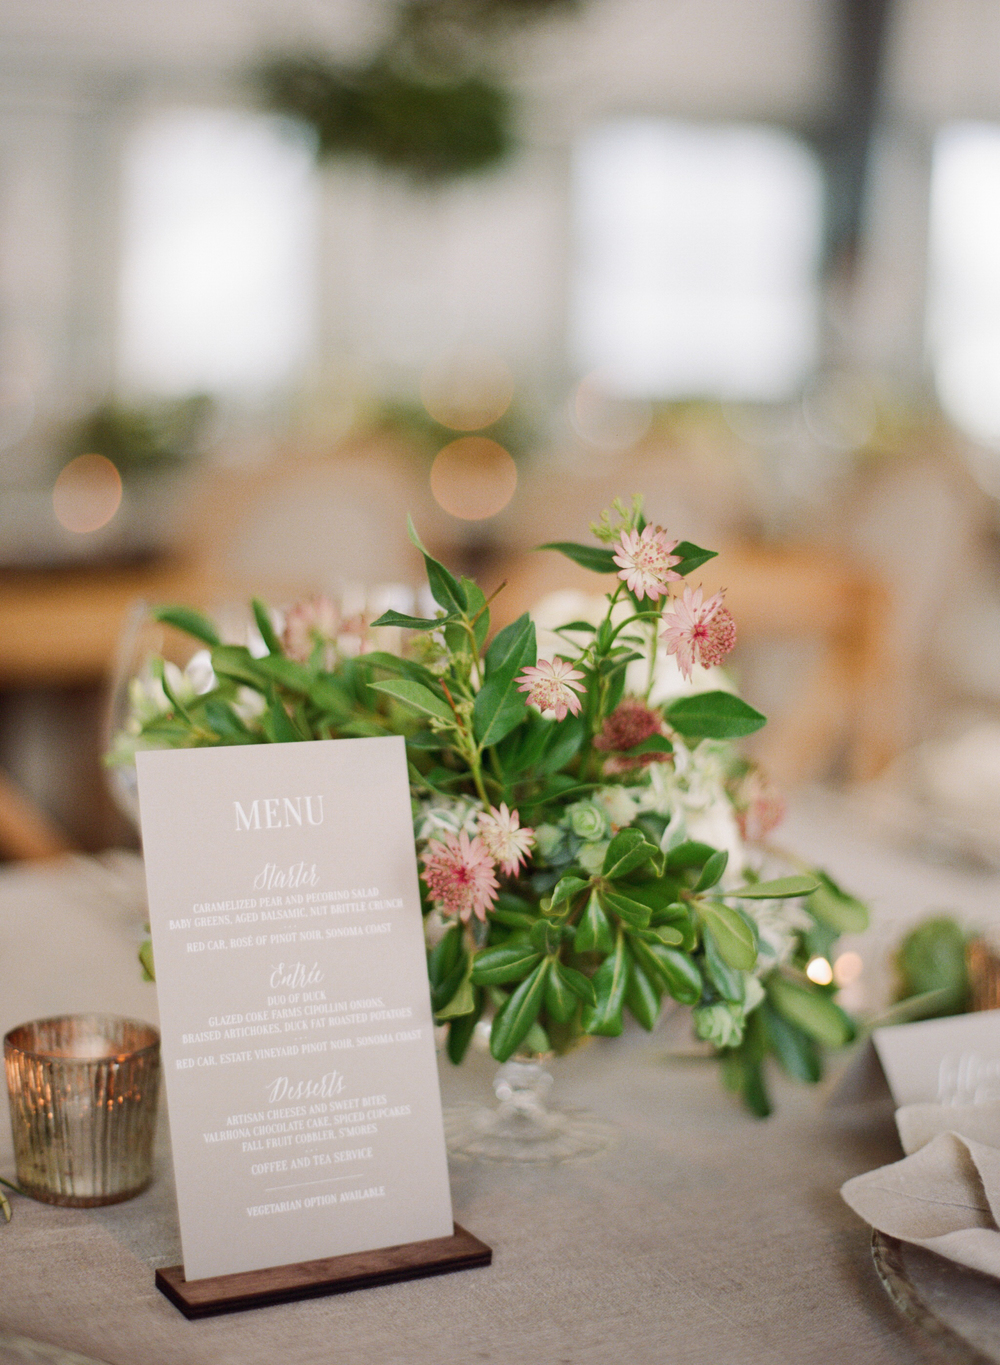 Menu card, votives and floral centerpiece at reception; Sylvie Gil Photography.